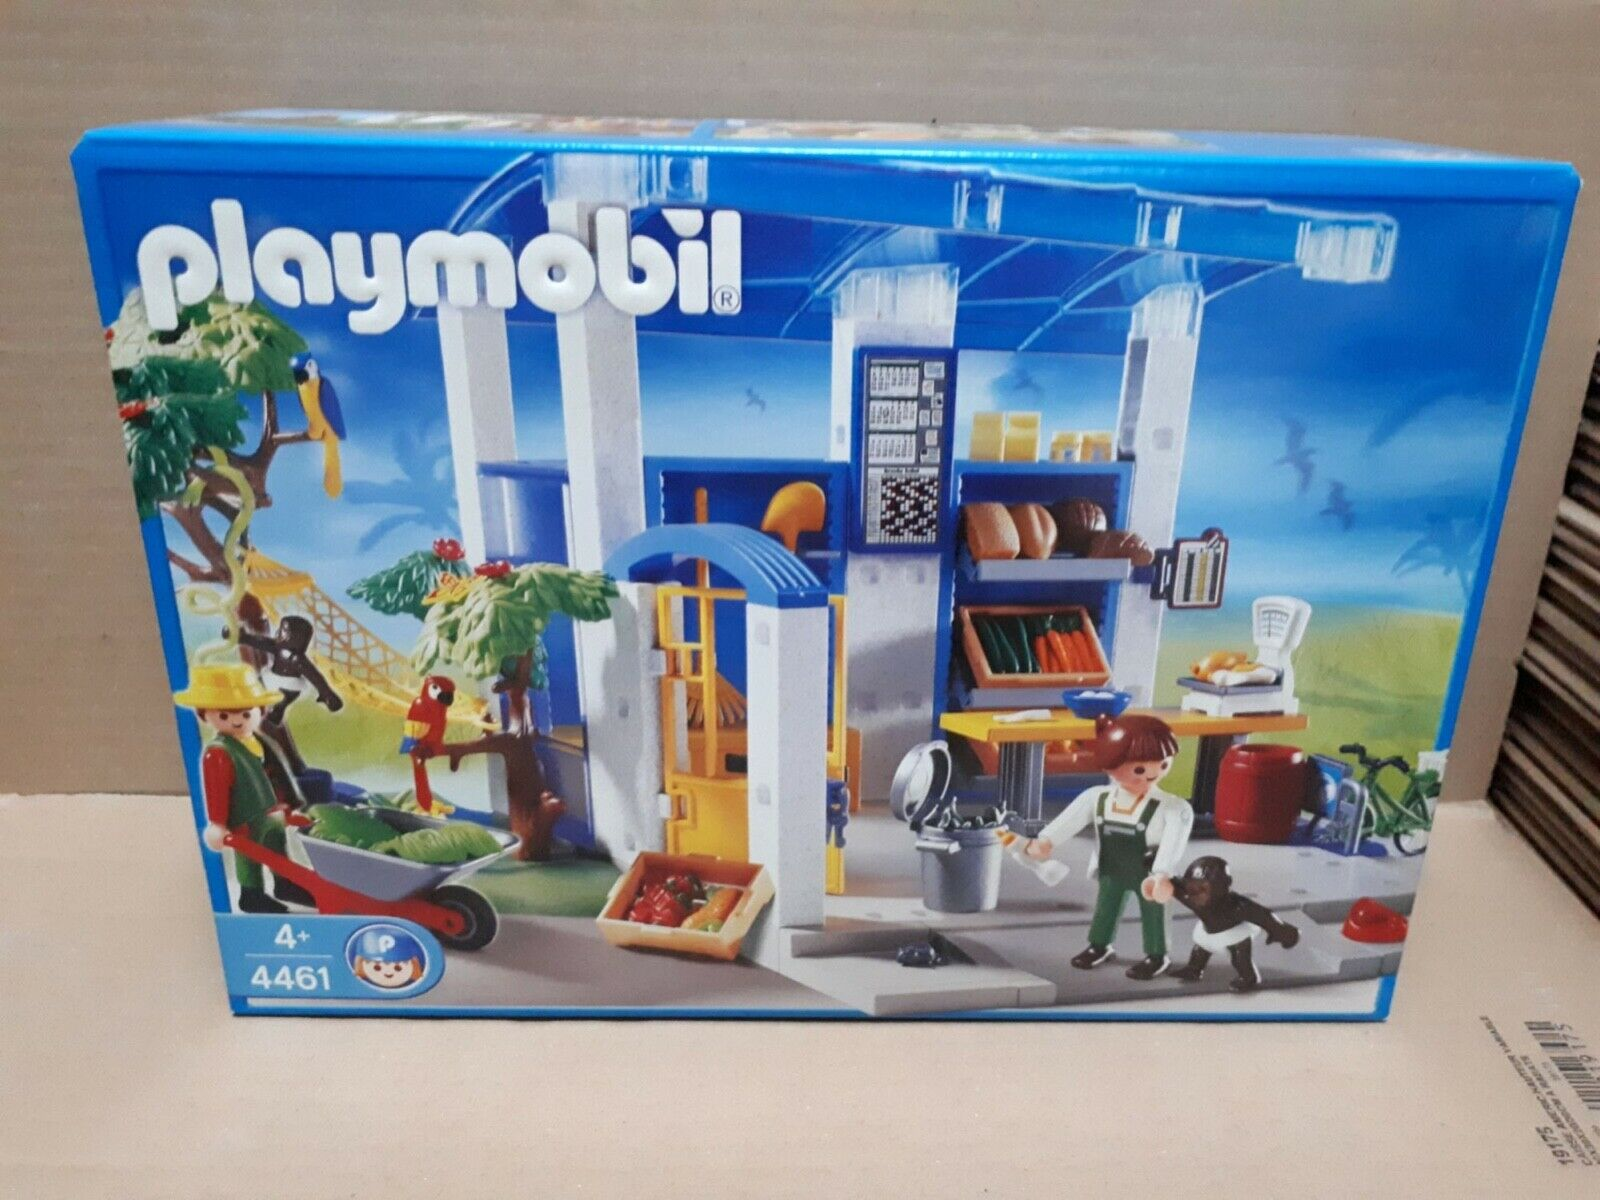 Playmobil 4461 Local Stockage Aliments NEUF et SCELLE